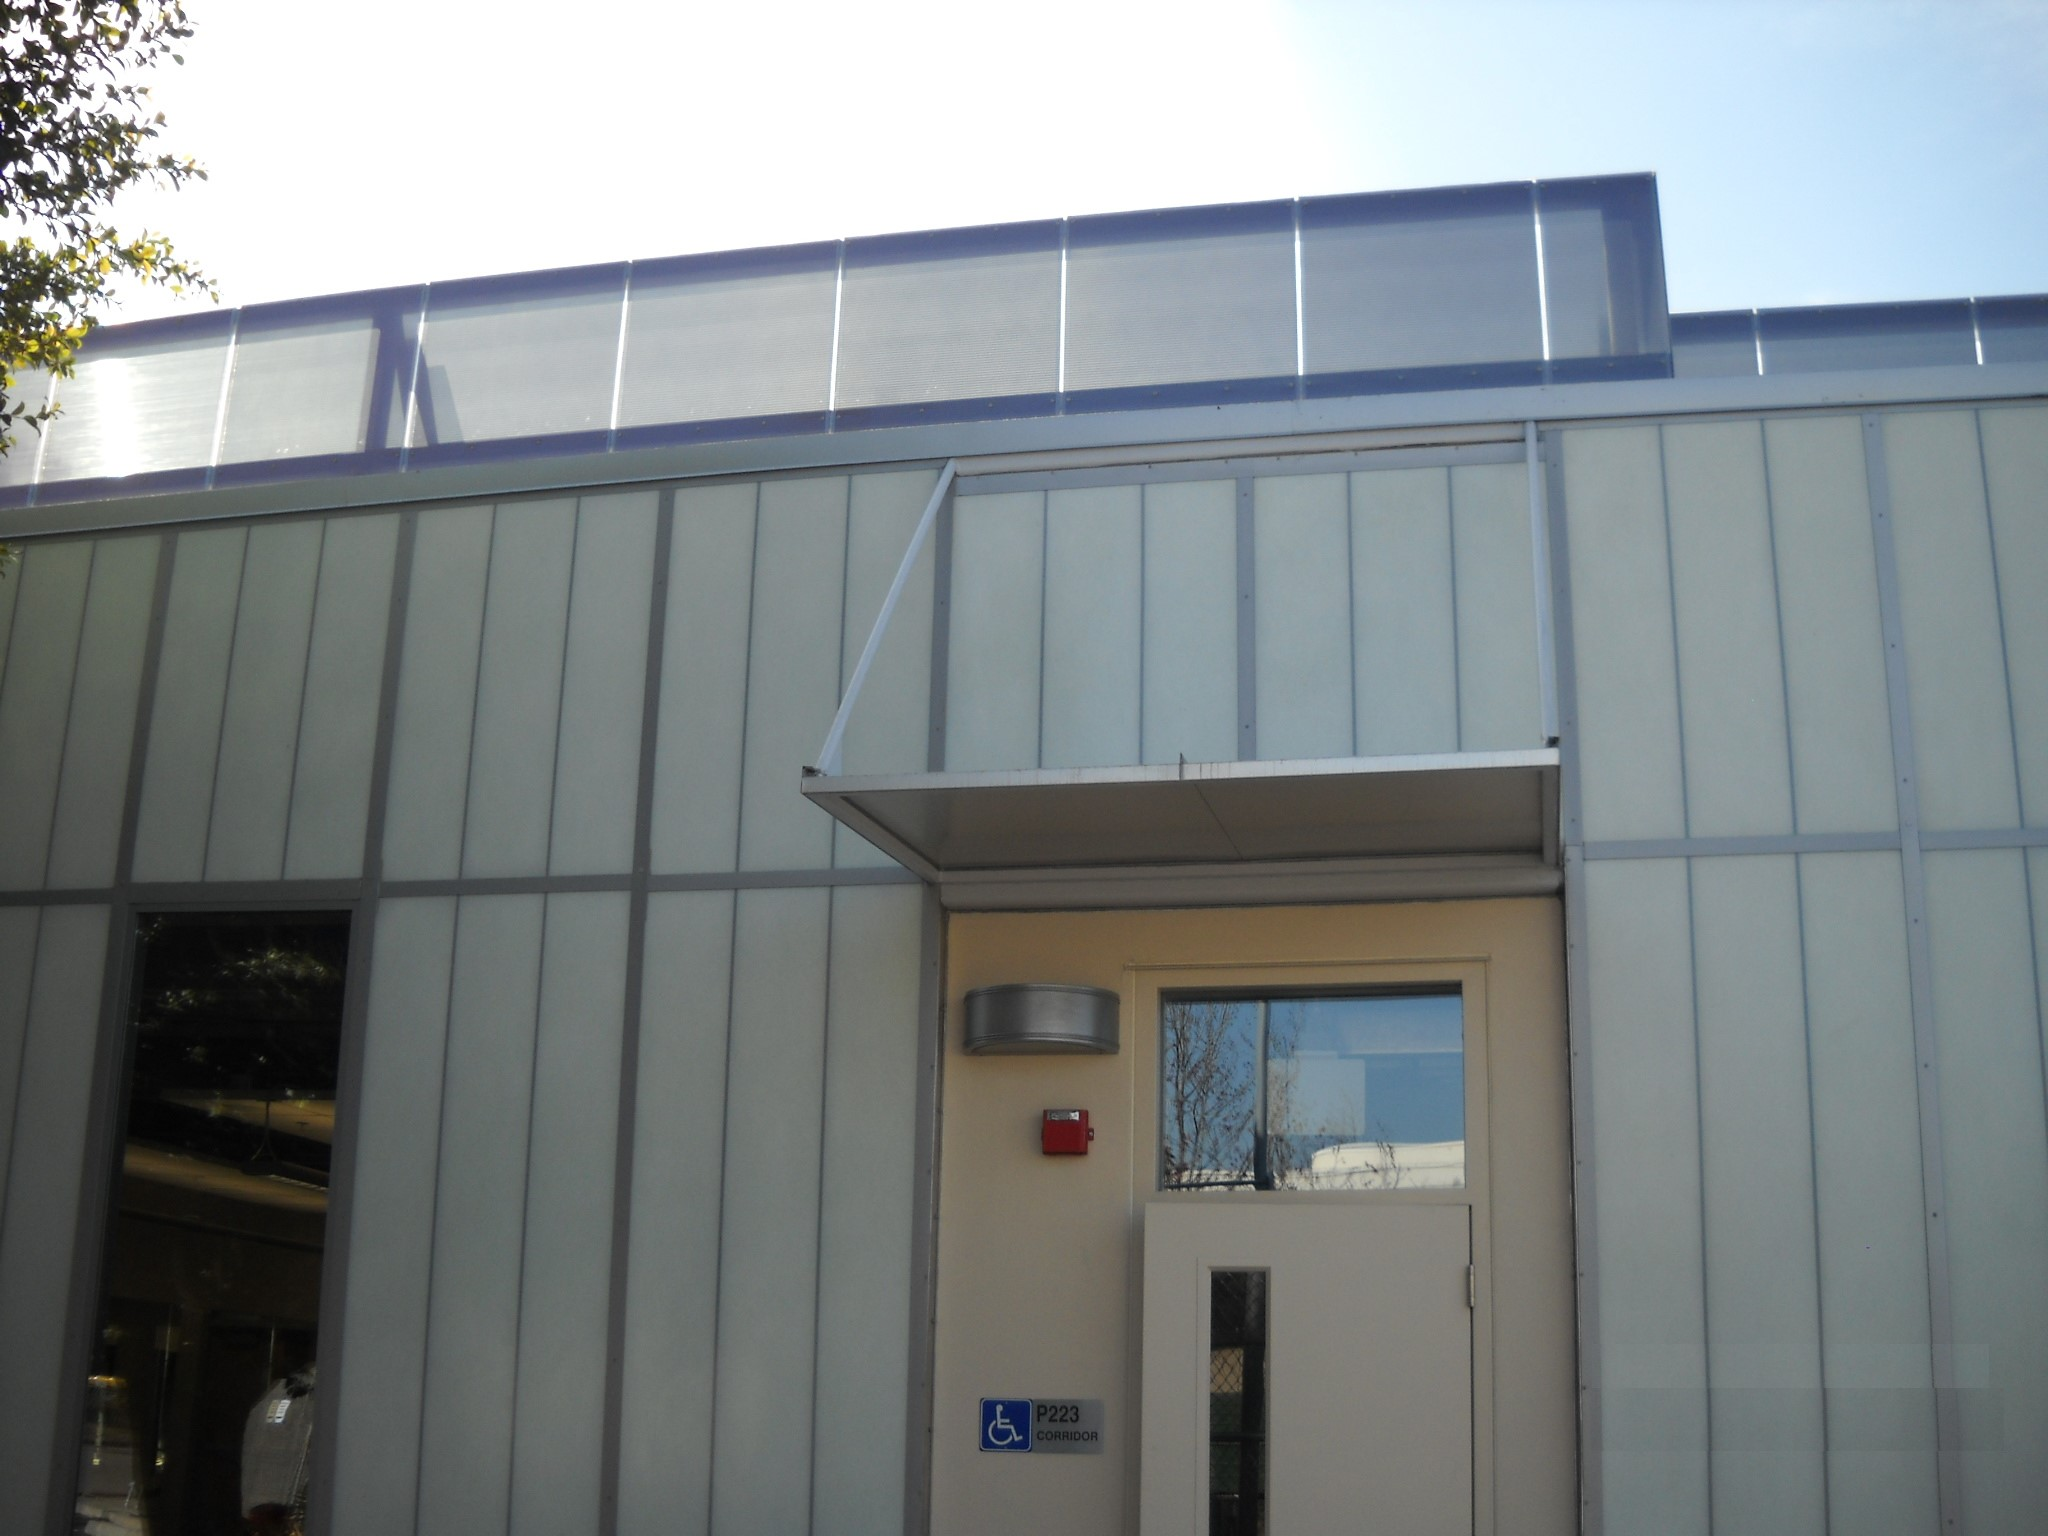 Translucent Panels For Metal Buildings : Project sd city college kalwall translucent wall panels